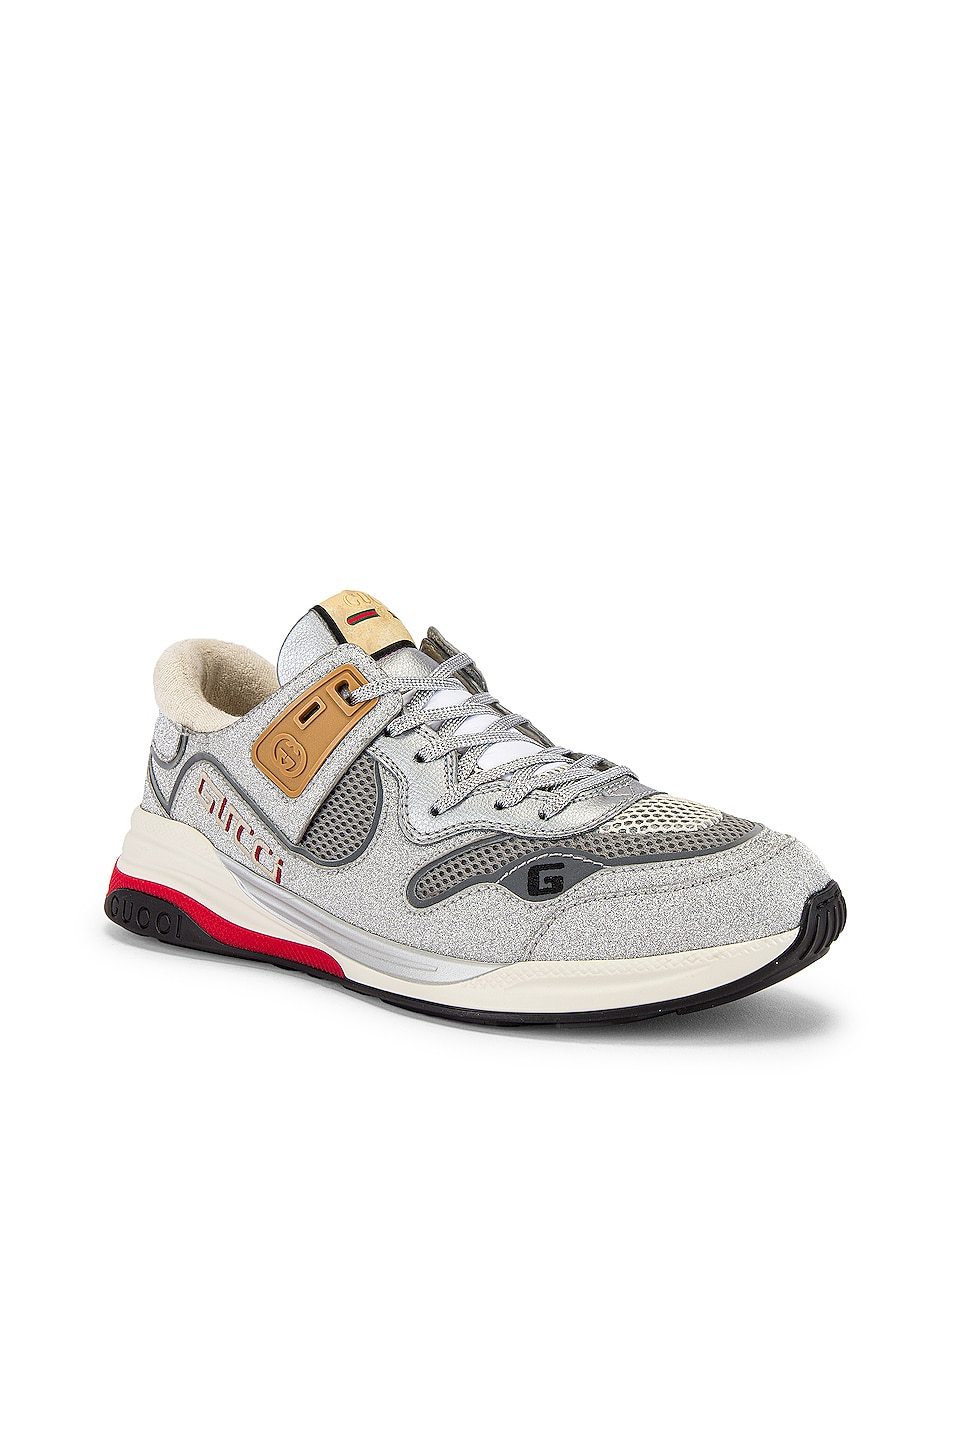 Image 1 of Gucci G Line Low Top Sneaker in Silver & White